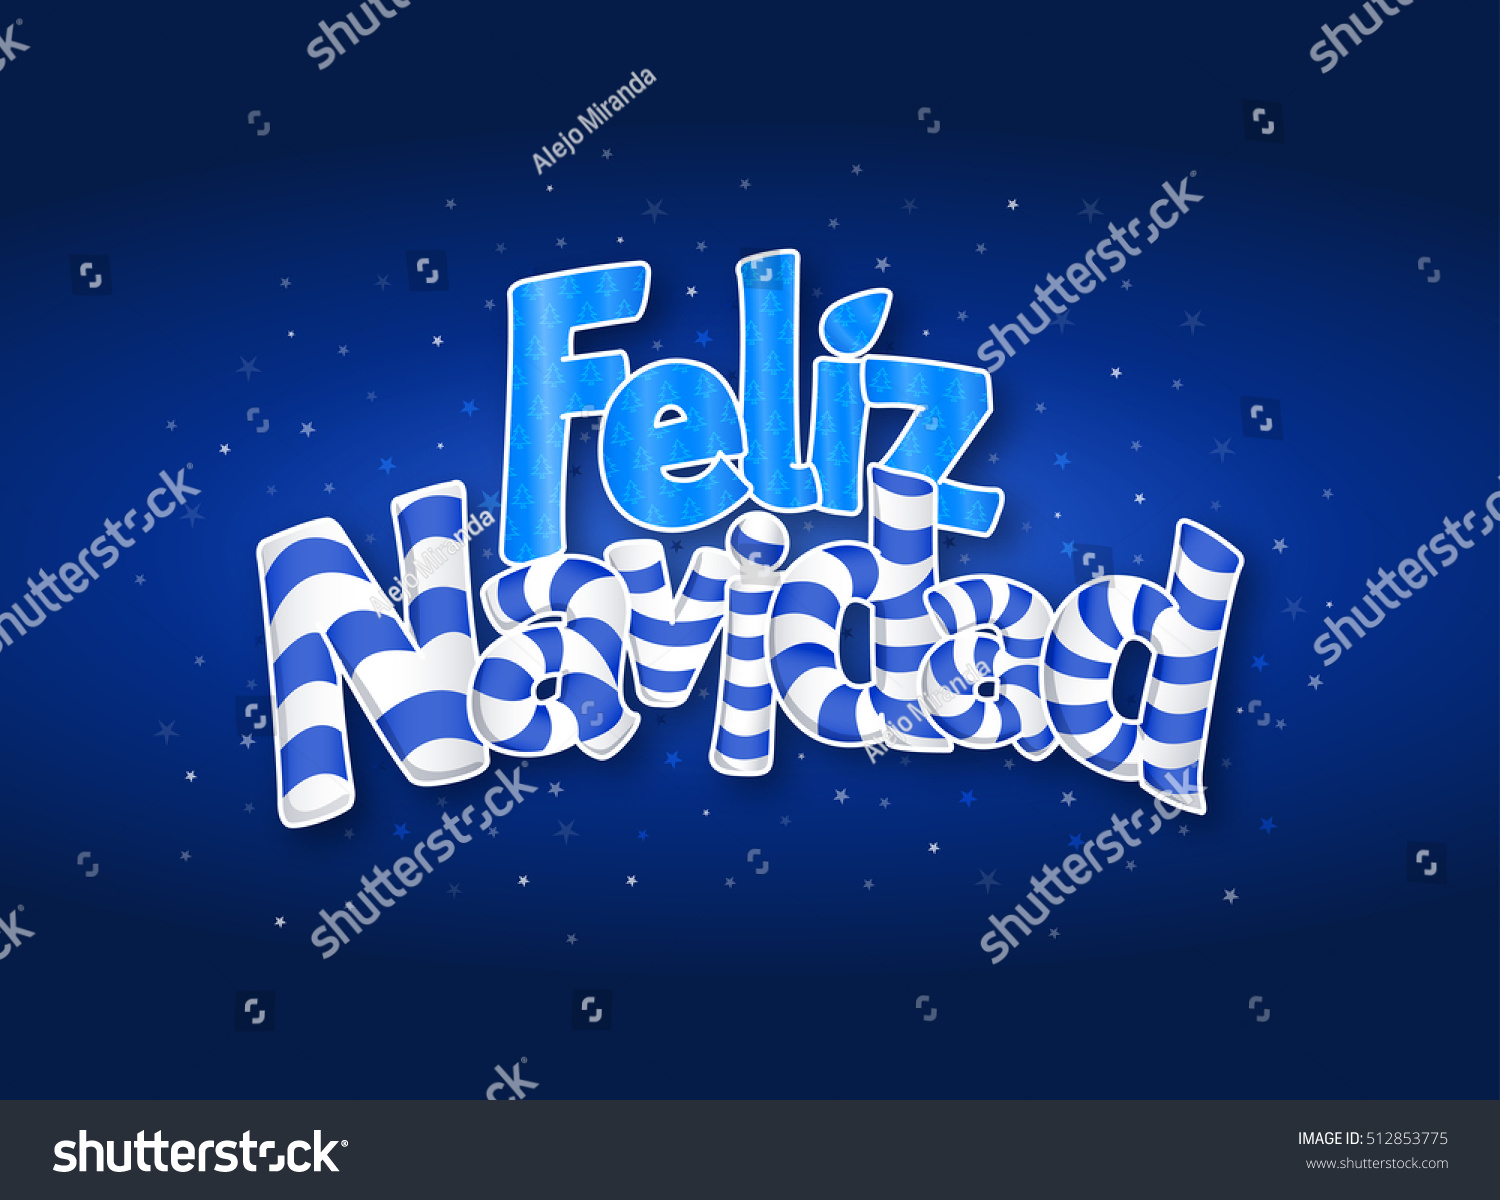 Feliz navidad merry christmas spanish language stock vector feliz navidad merry christmas in spanish language blue cover of greeting card with stars m4hsunfo